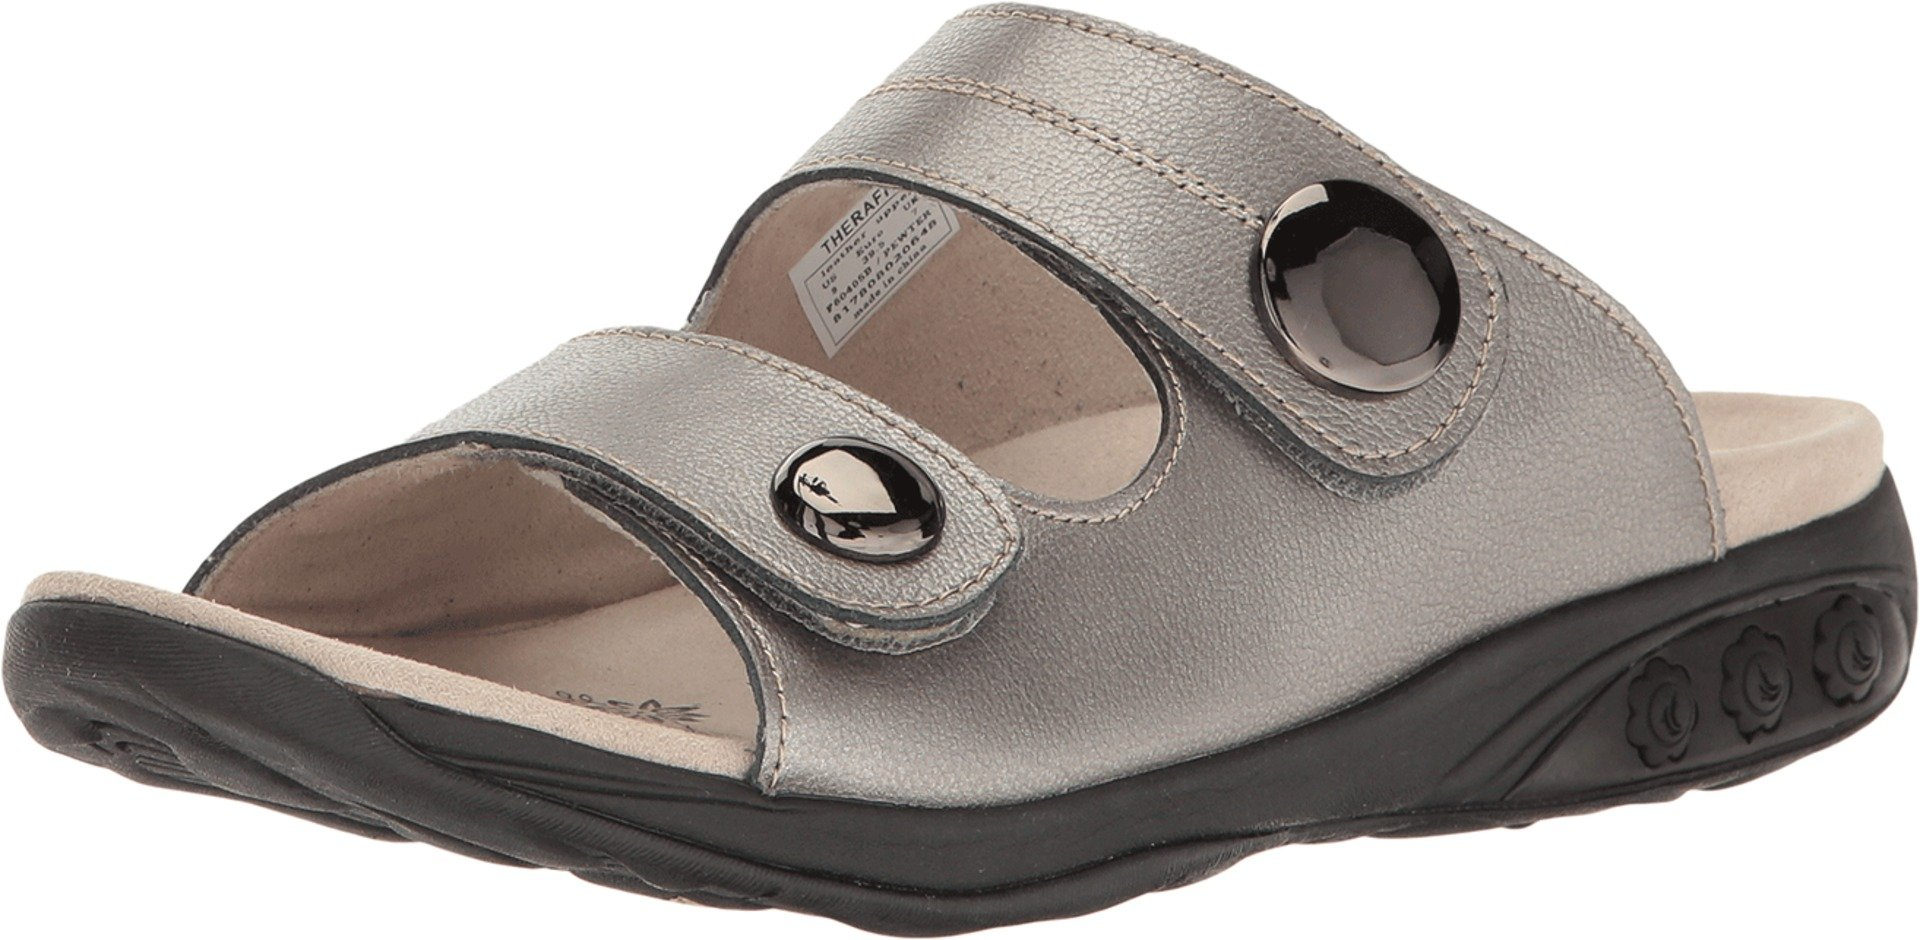 Therafit Eva Women's Leather Adjustable Strap Slip on Sandal - Pewter, Size 8 - for Plantar Fasciitis/Foot Pain